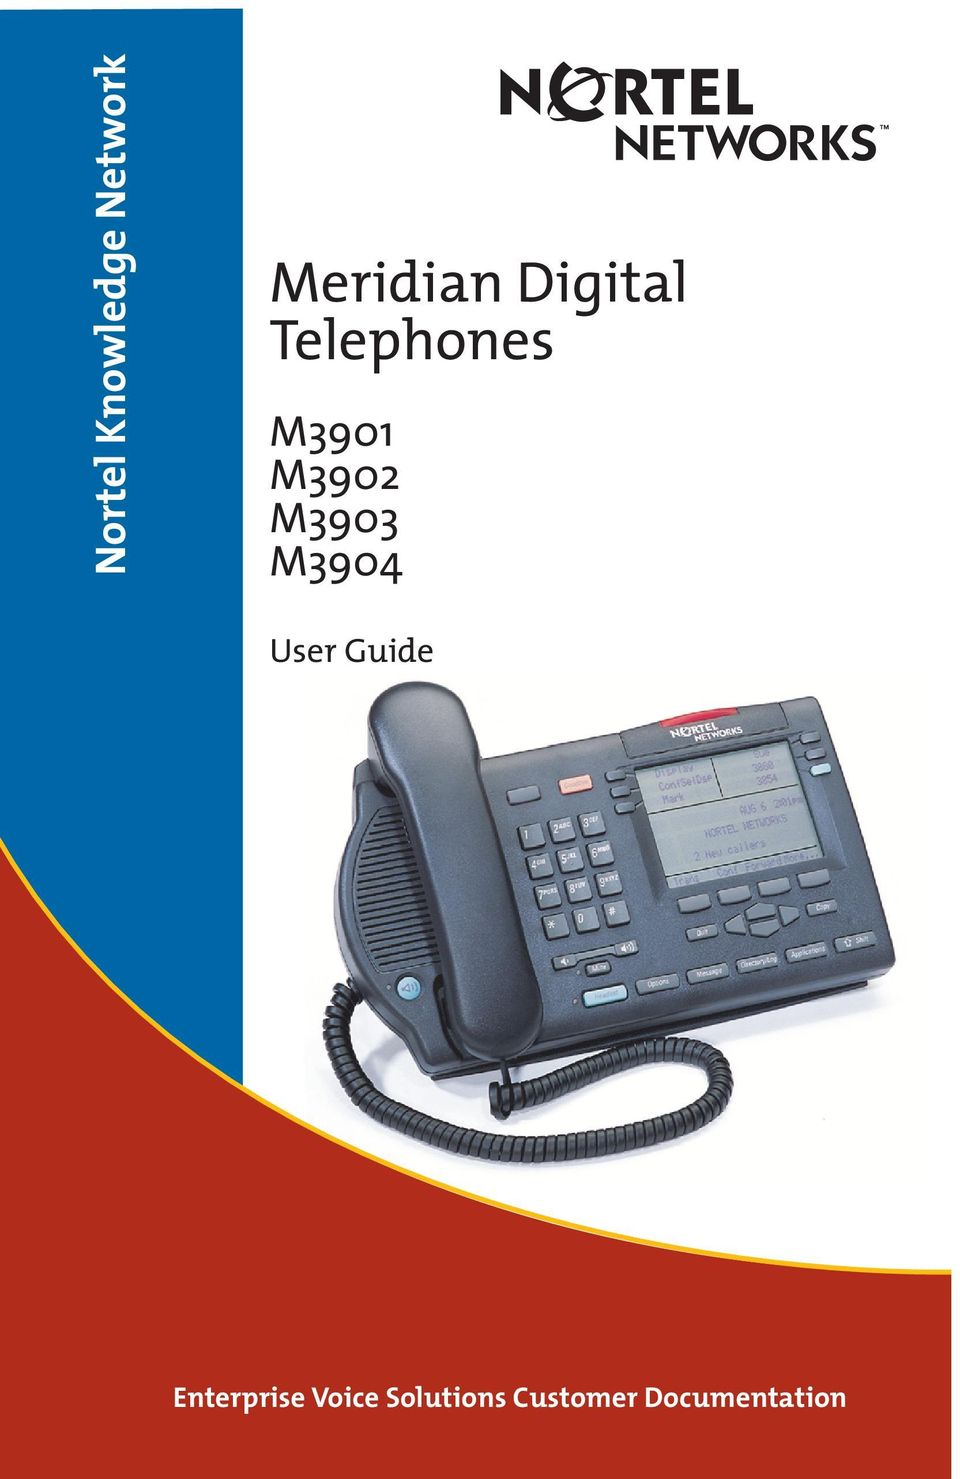 M3903 M3904 User Guide Enterprise